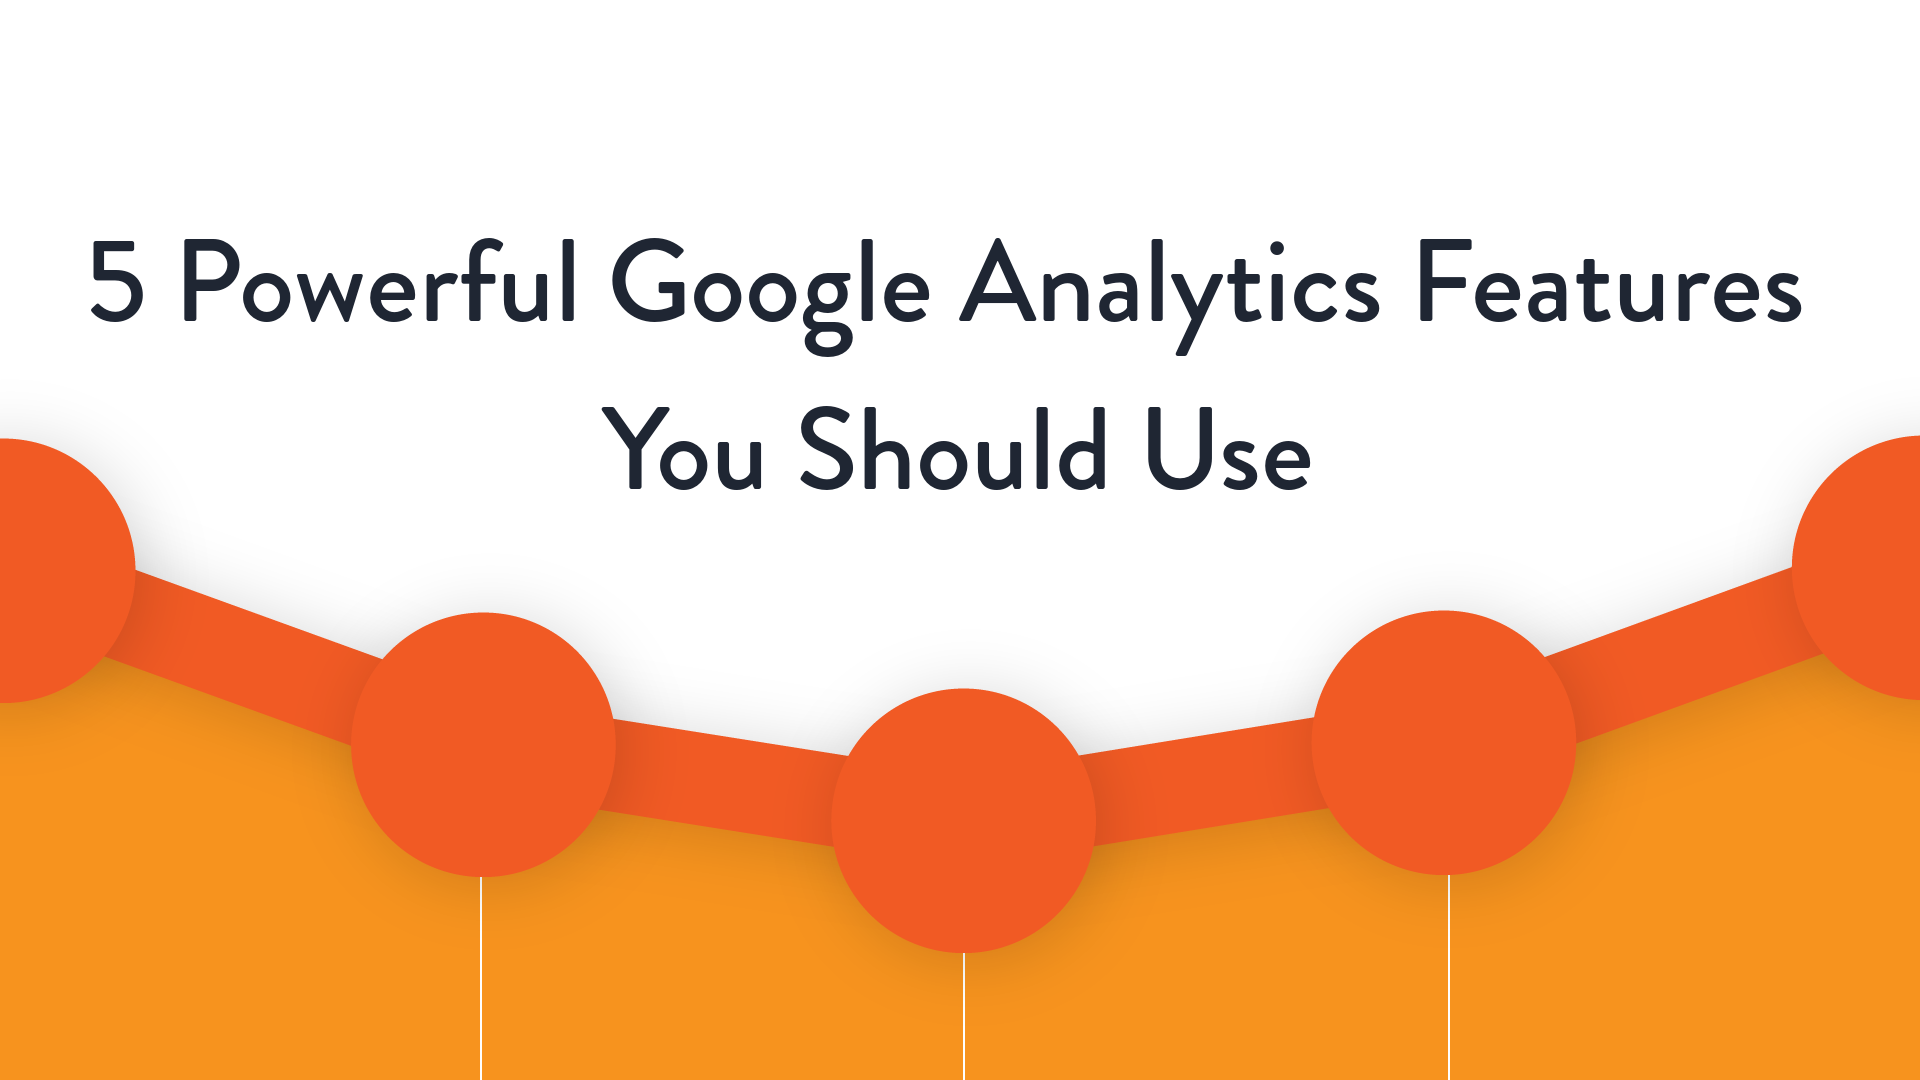 5 Powerful Google Analytics Features You Should Use